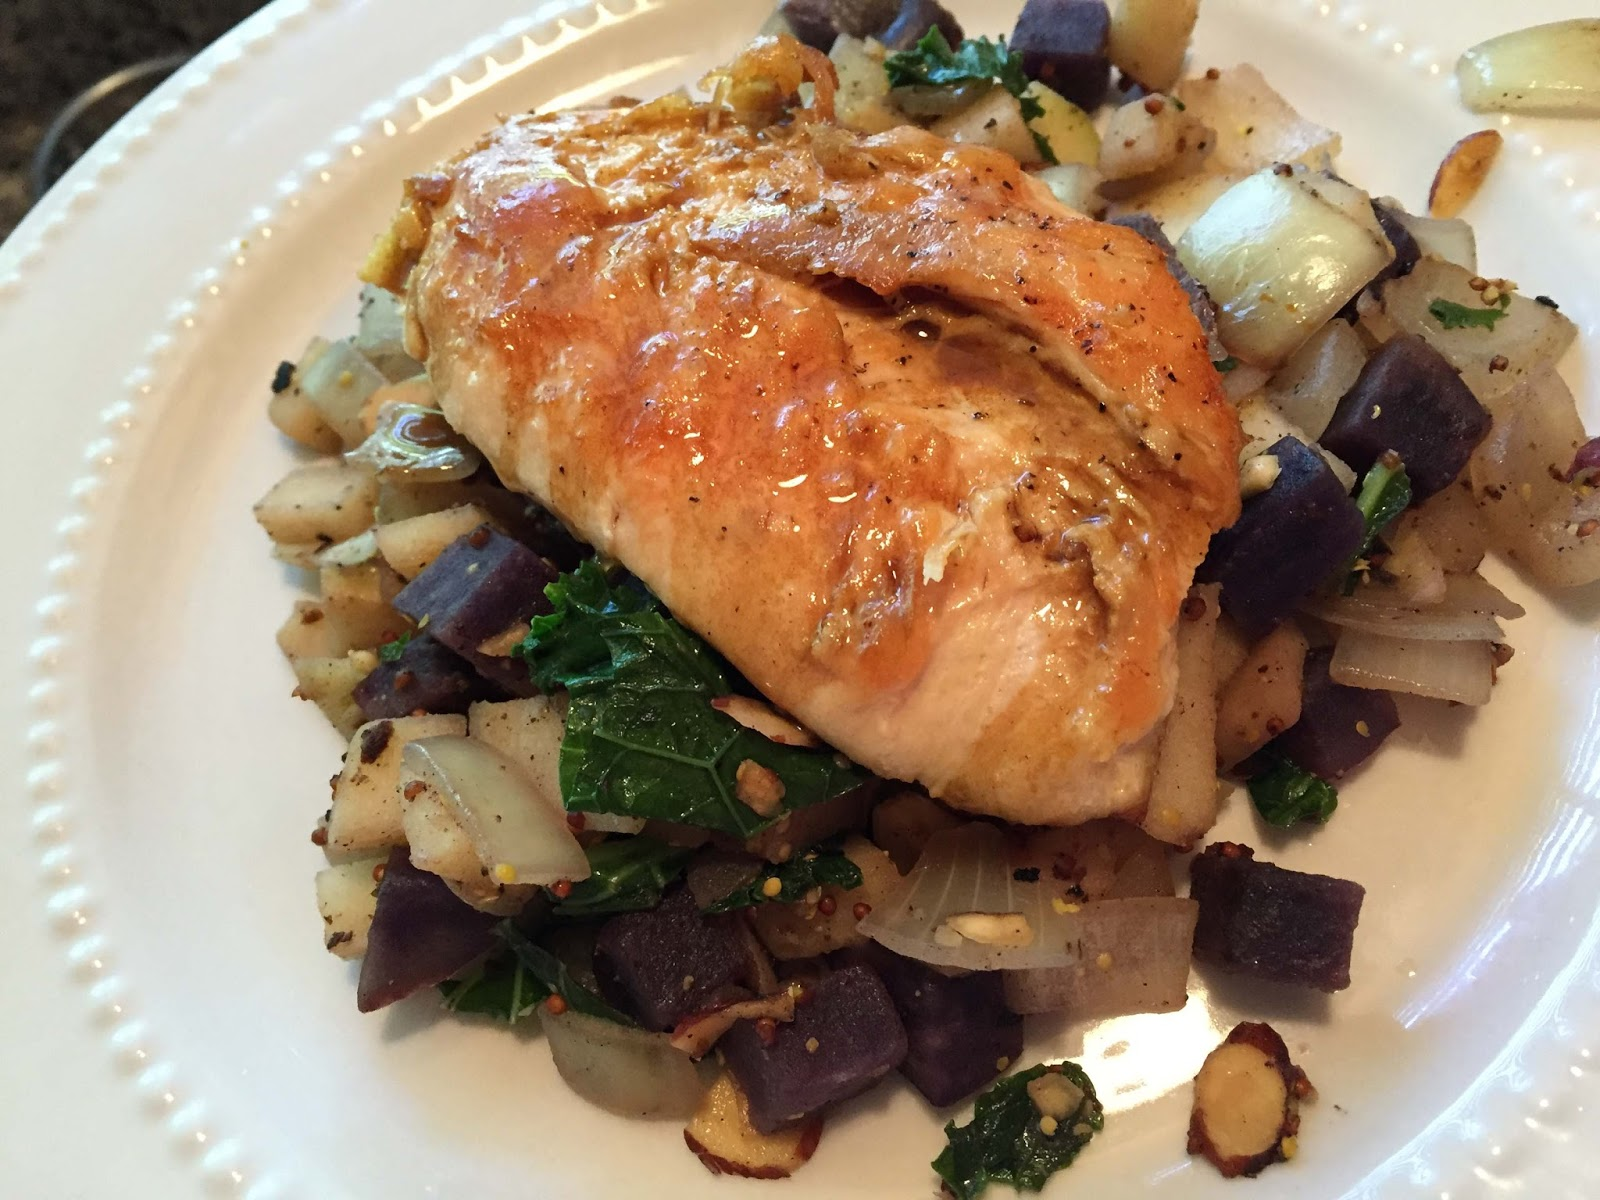 Blue apron omaha - Again The Apples In The Mix Threw Me Off A Little But If For No Other Reason Blue Apron This Go Round Was Totally Worth It For Me Because I Learned How